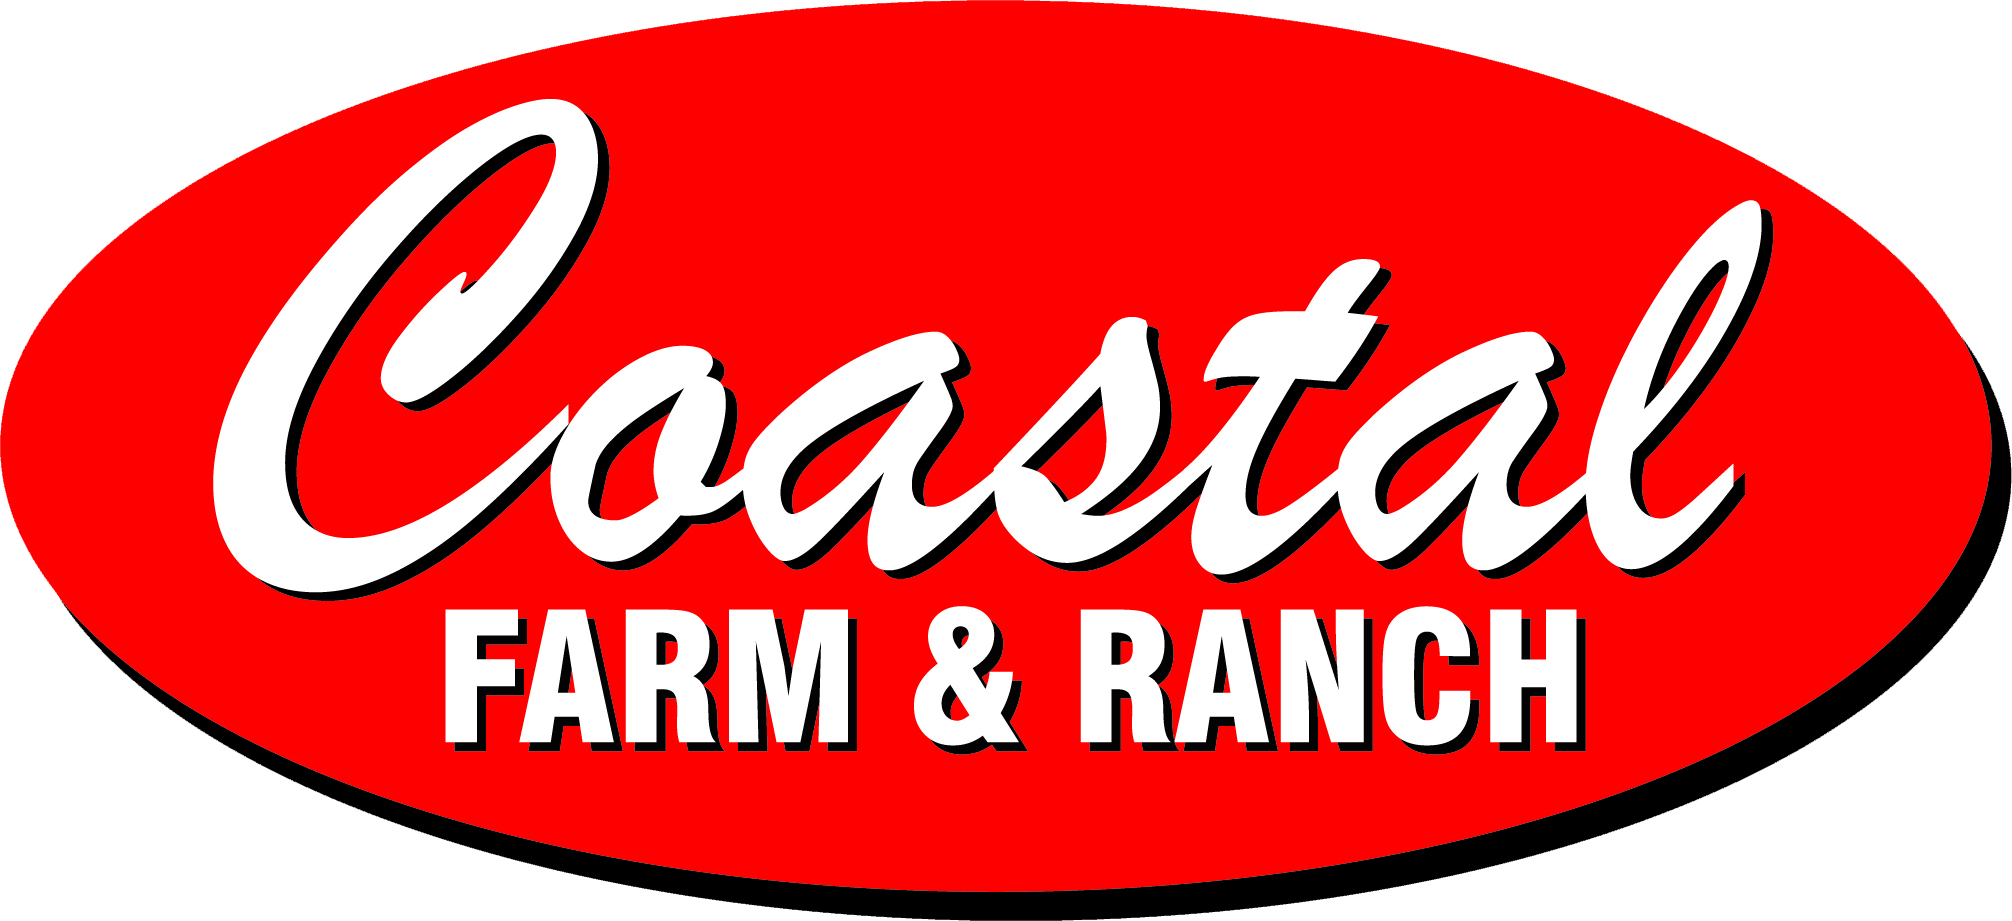 Coastal Farm & Ranch - Auburn